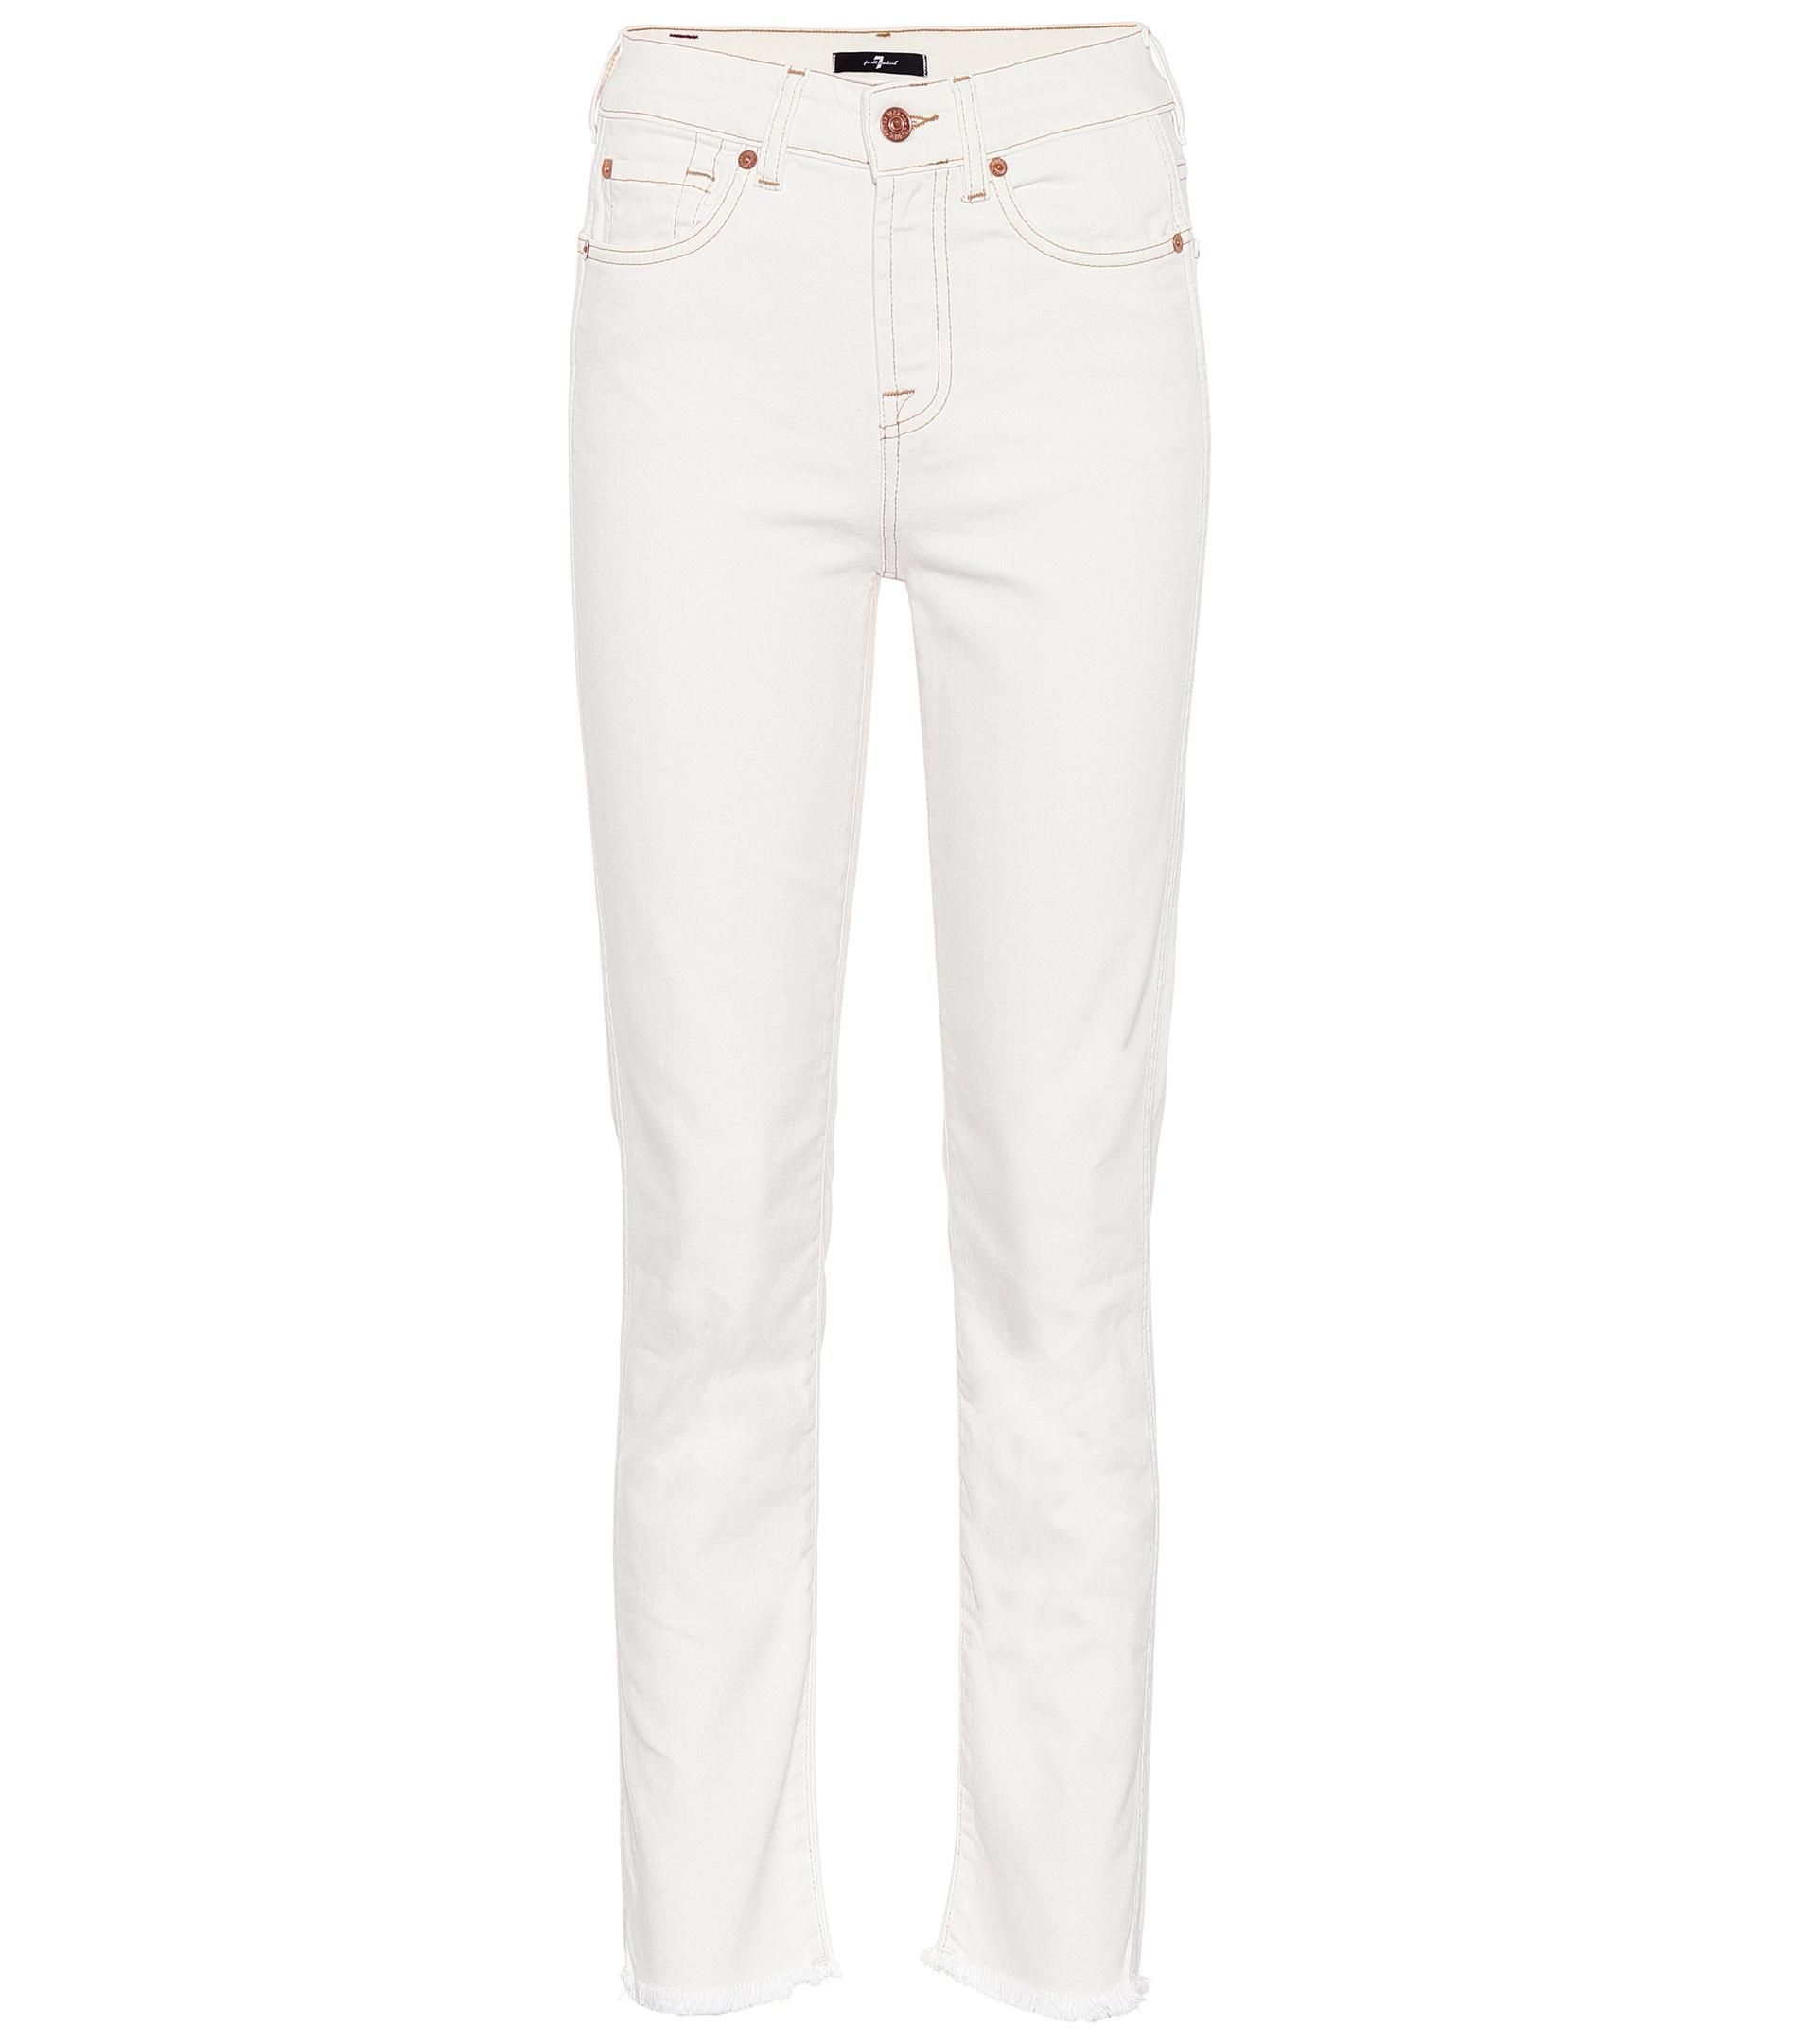 Discount Low Shipping Fee Outlet Discount Erin straight-leg jeans 7 For All Mankind Cheapest Price Online vNTRg9